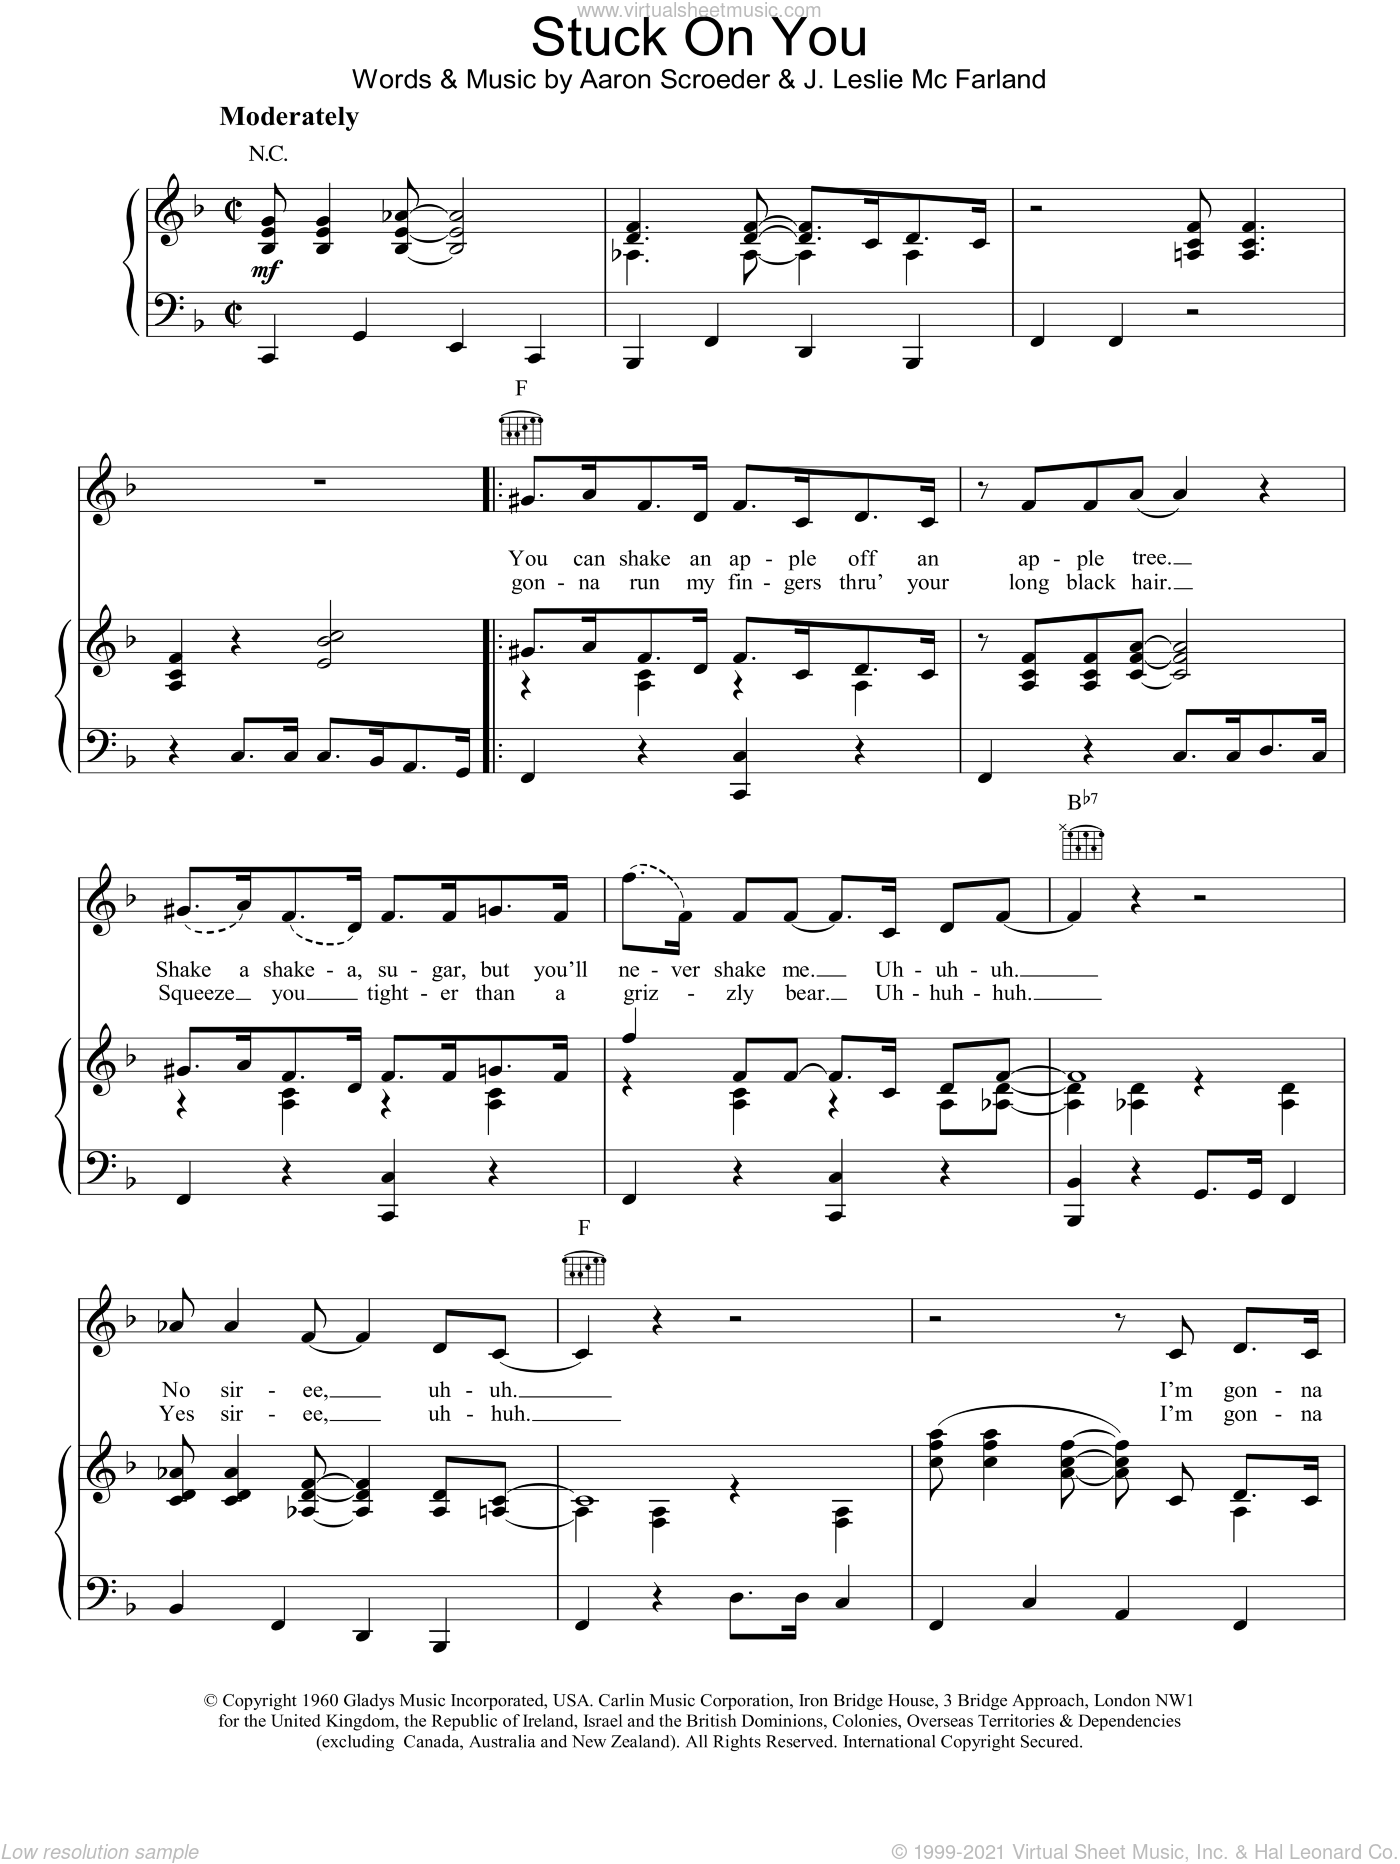 Stuck On You sheet music for voice, piano or guitar by J. Leslie McFarland